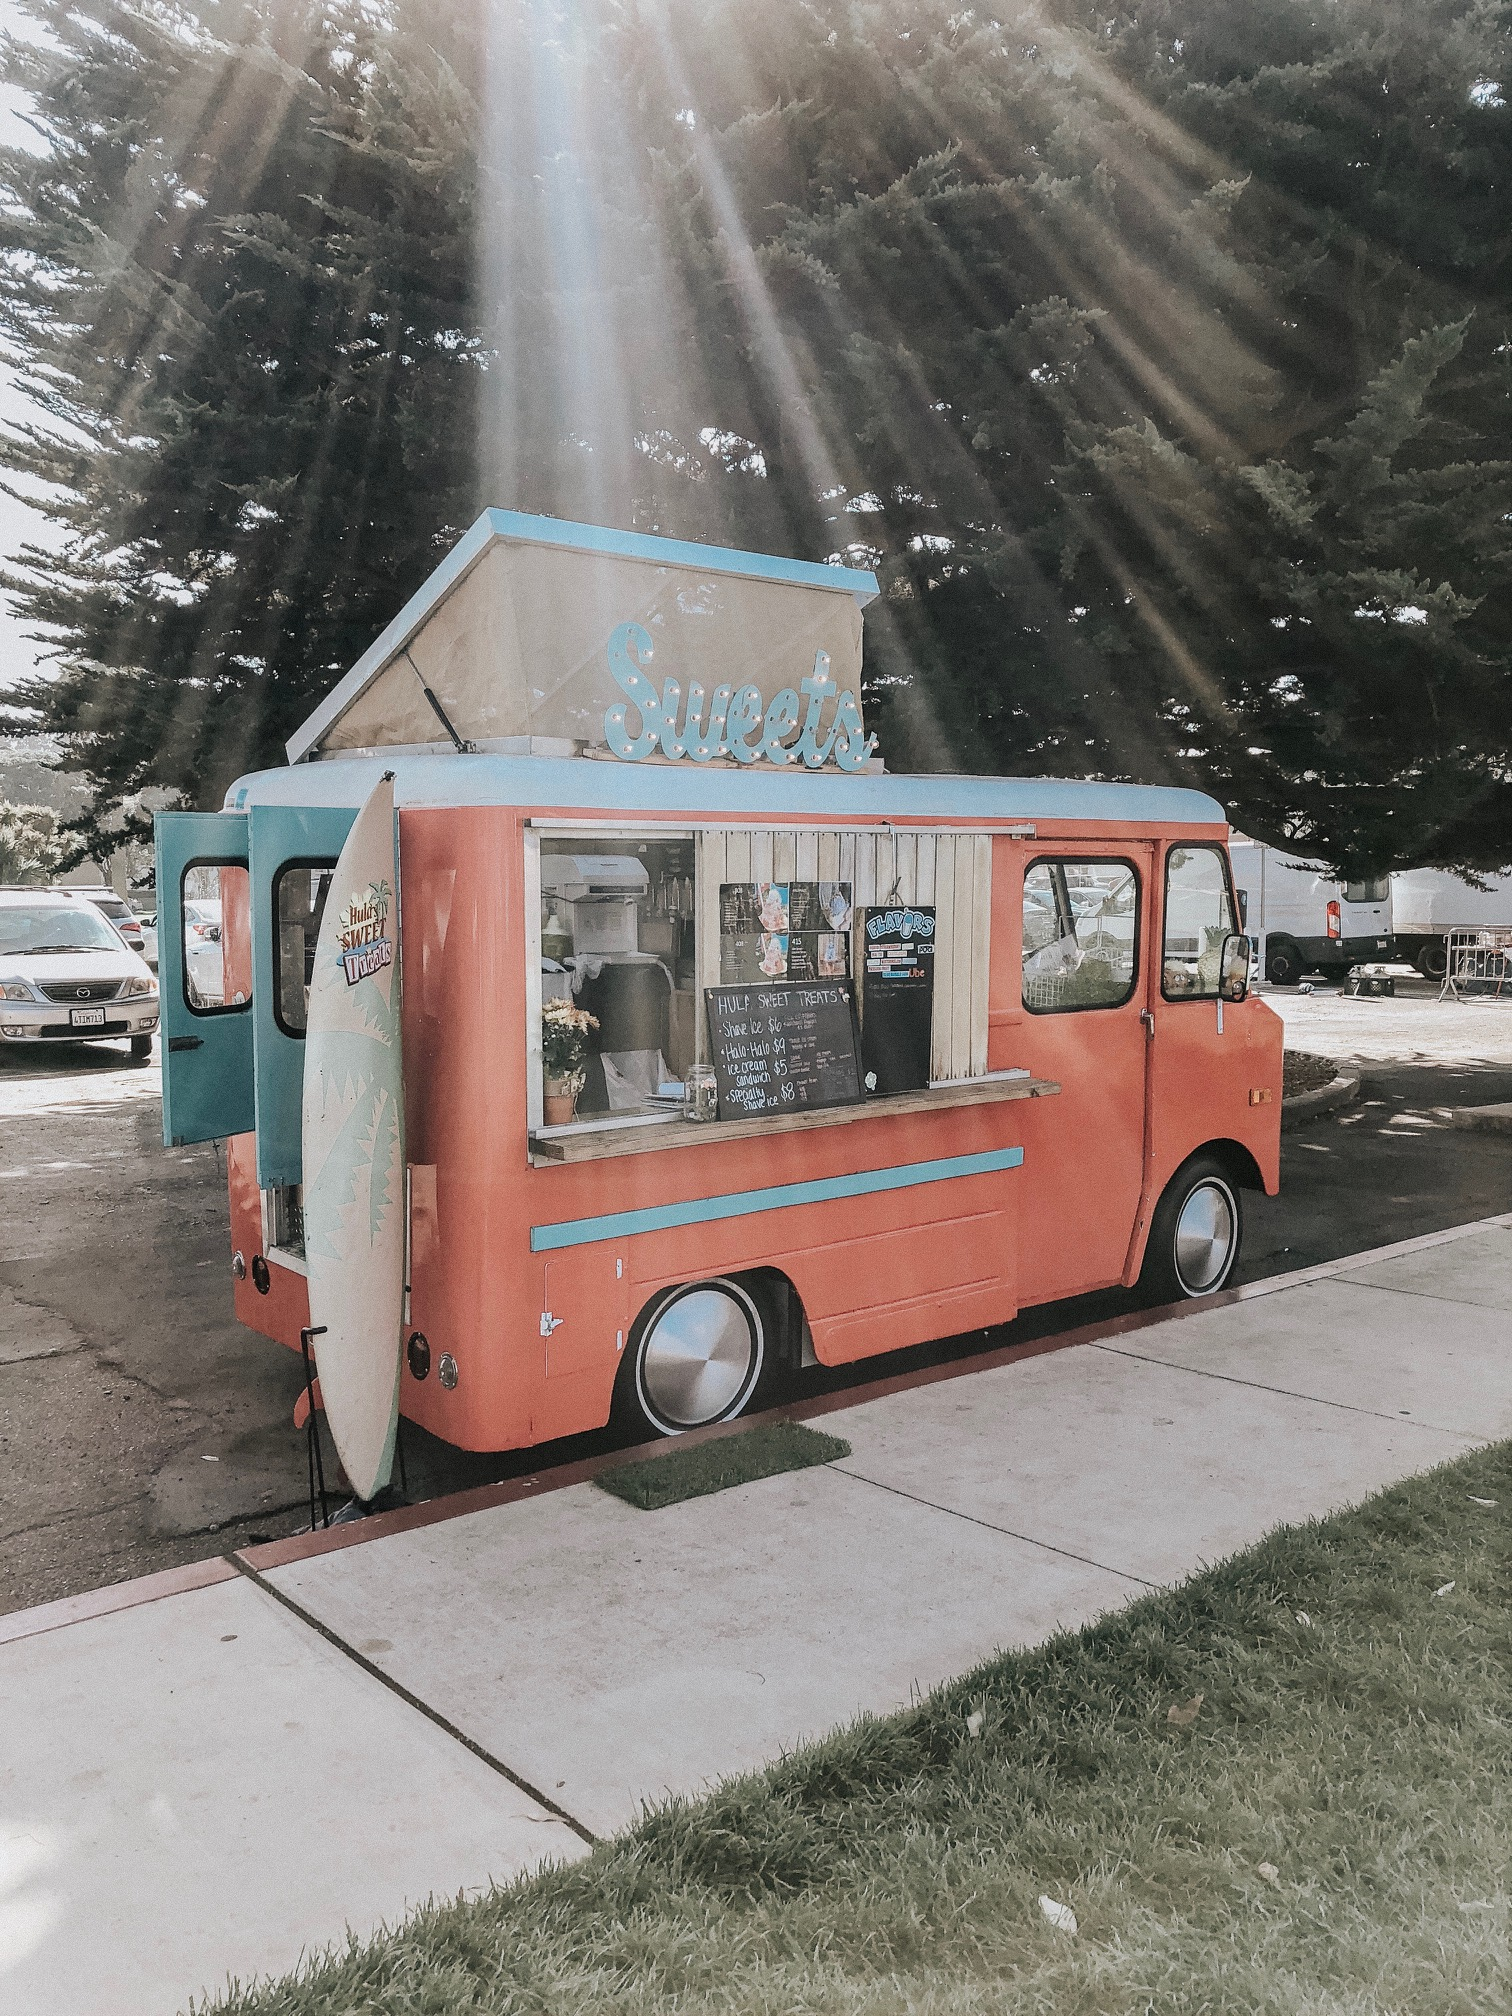 Daily Splendor | Things to do in San Francisco #sanfrancisco #california #foodtrucks